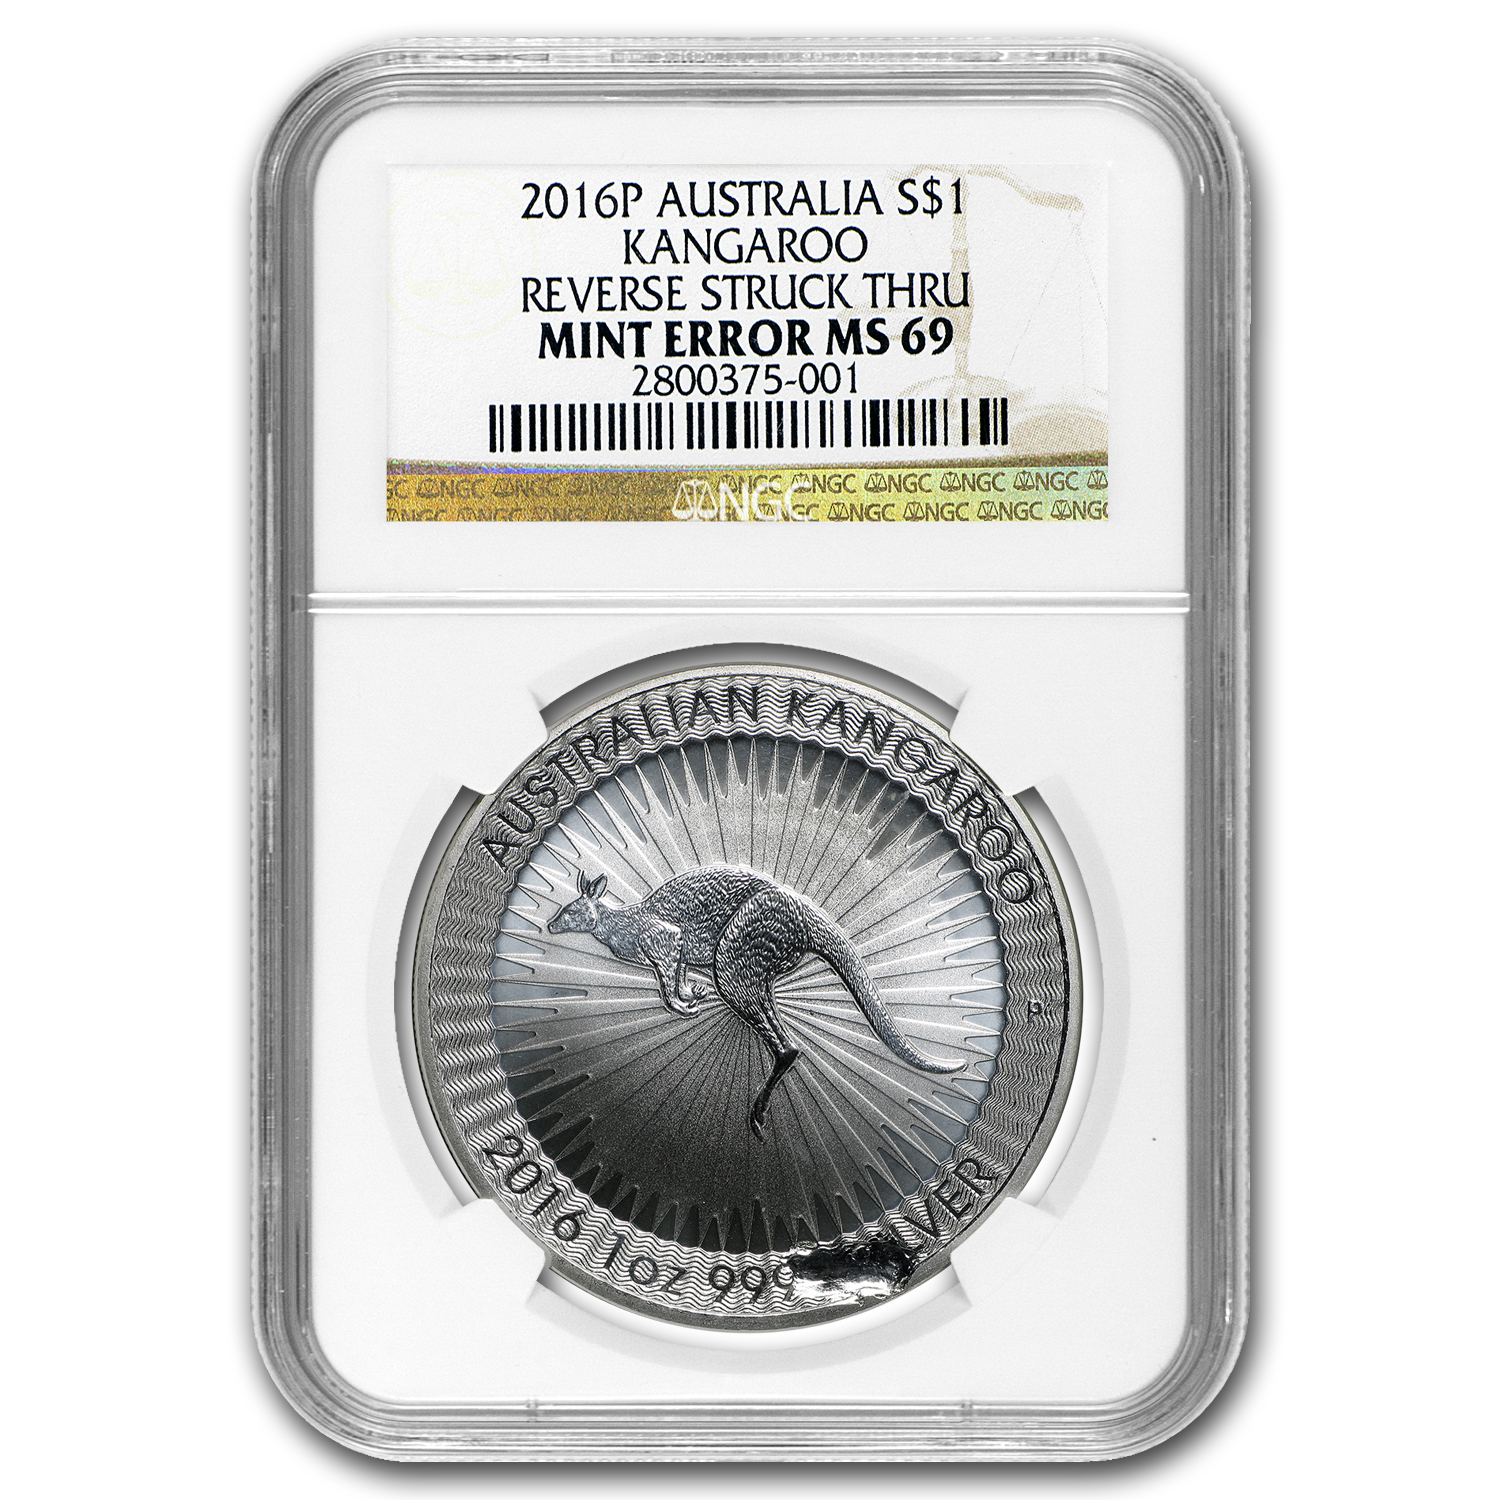 2016 AUS 1 oz Silver Kangaroo MS-69 NCG Mint Error (Struck Thru)